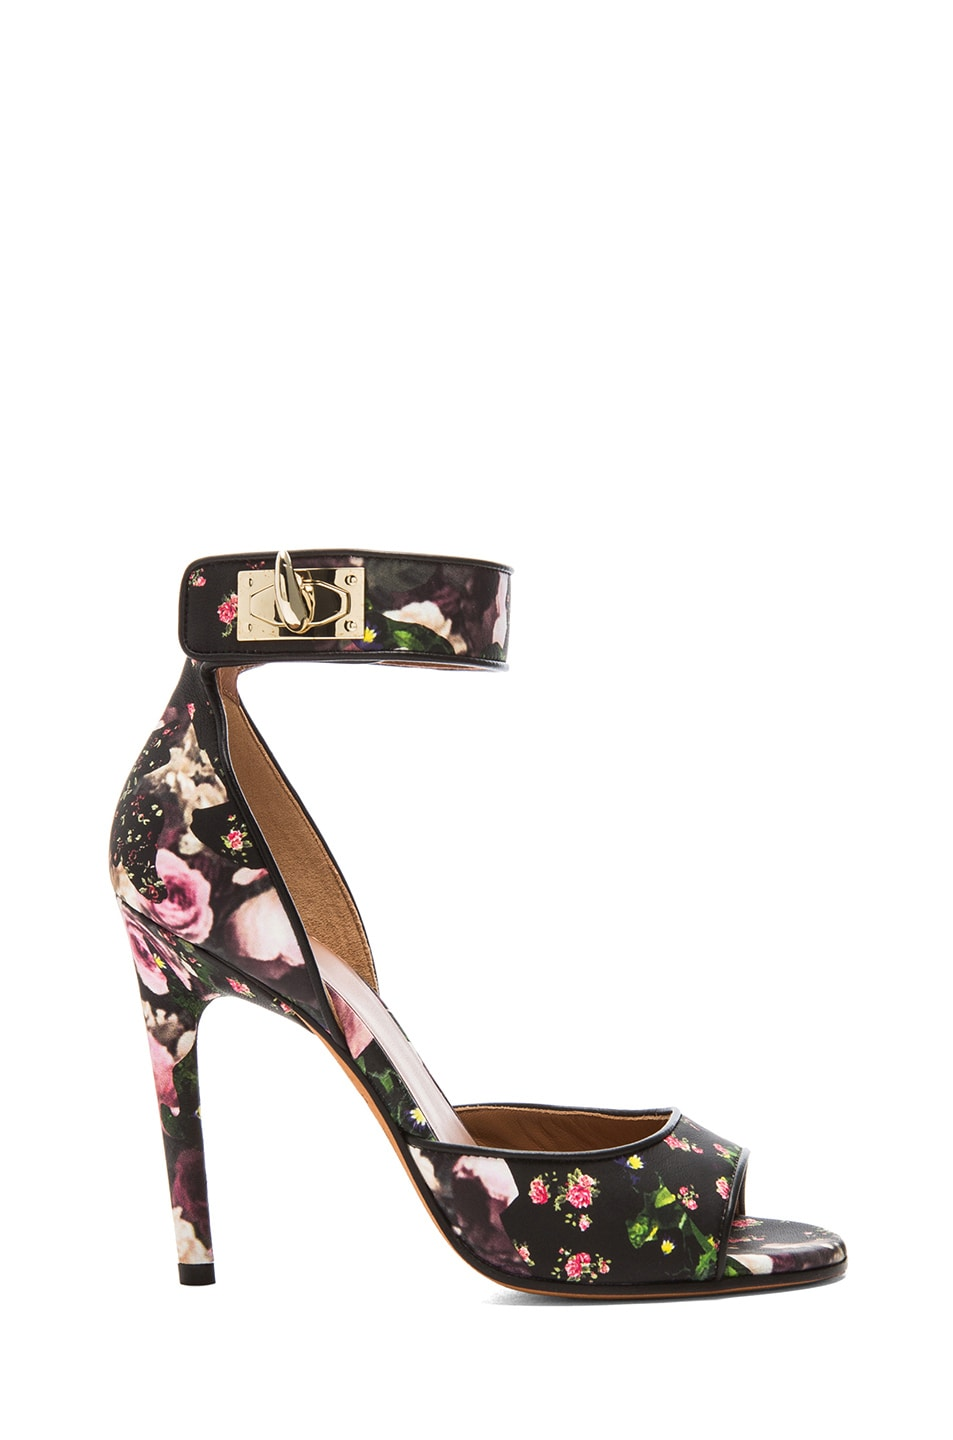 Image 1 of GIVENCHY Shark Lock Floral Nappa Leather Sandals in Multi